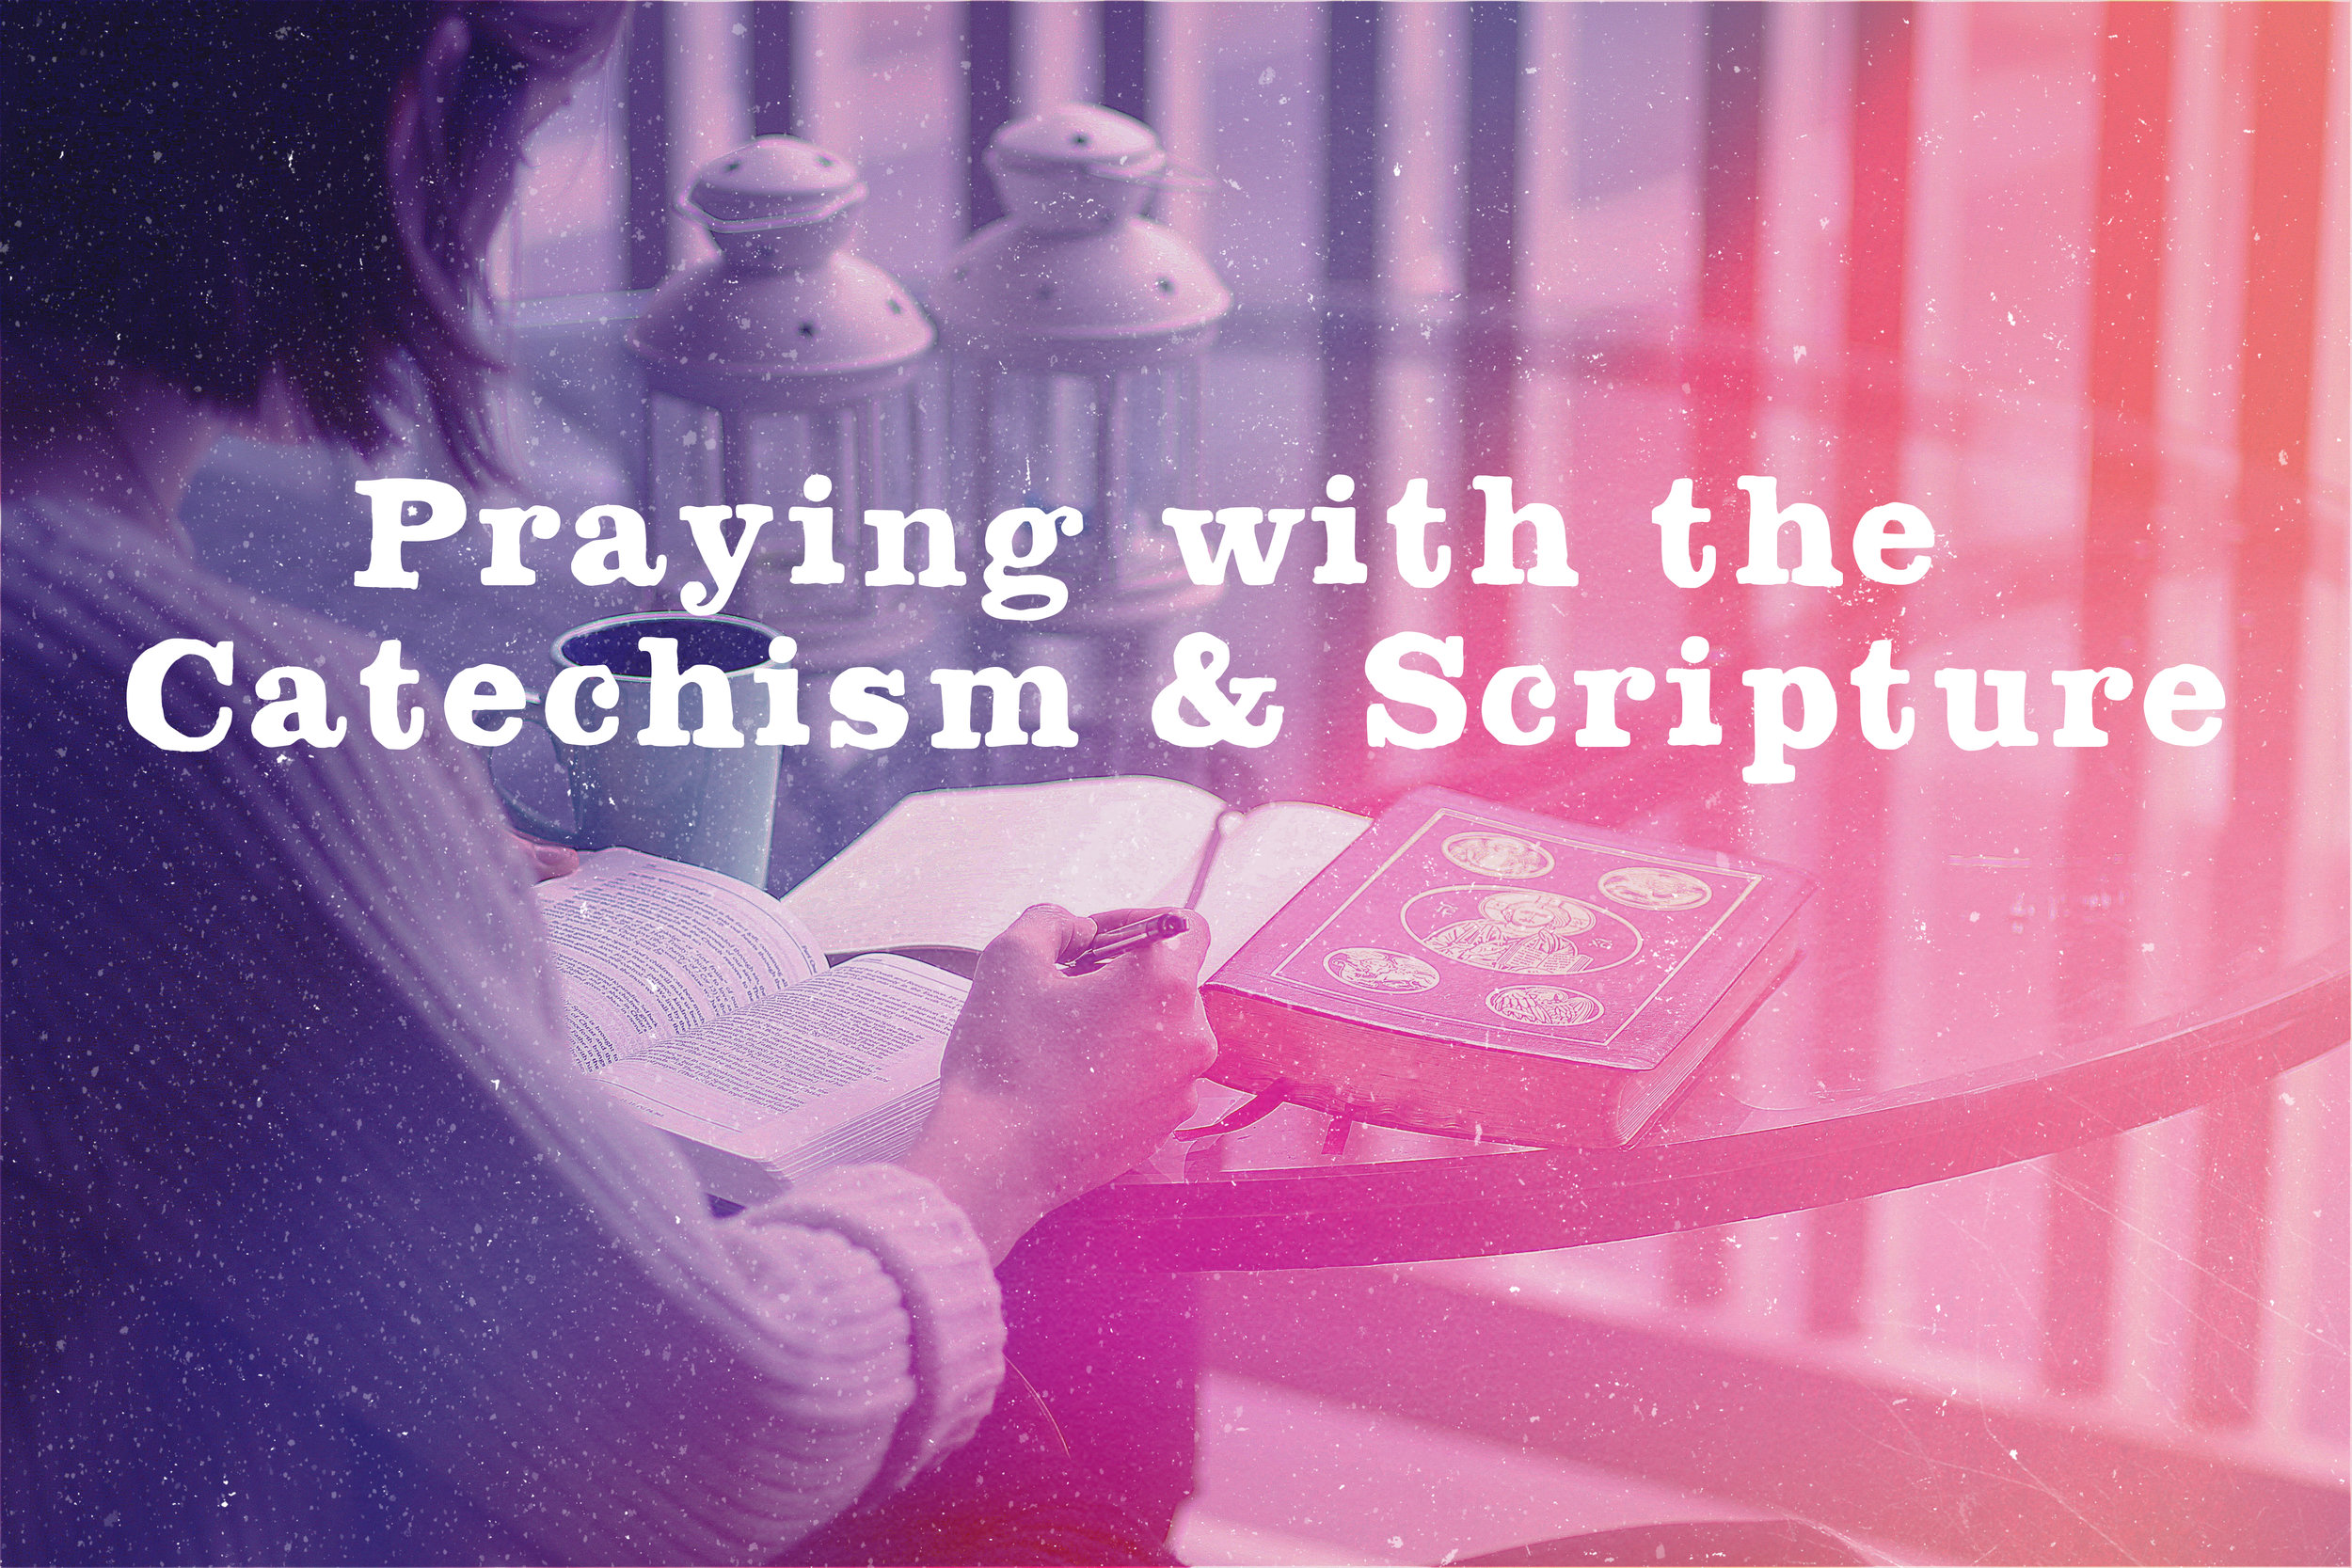 praying with scripture and the catechism1.jpg